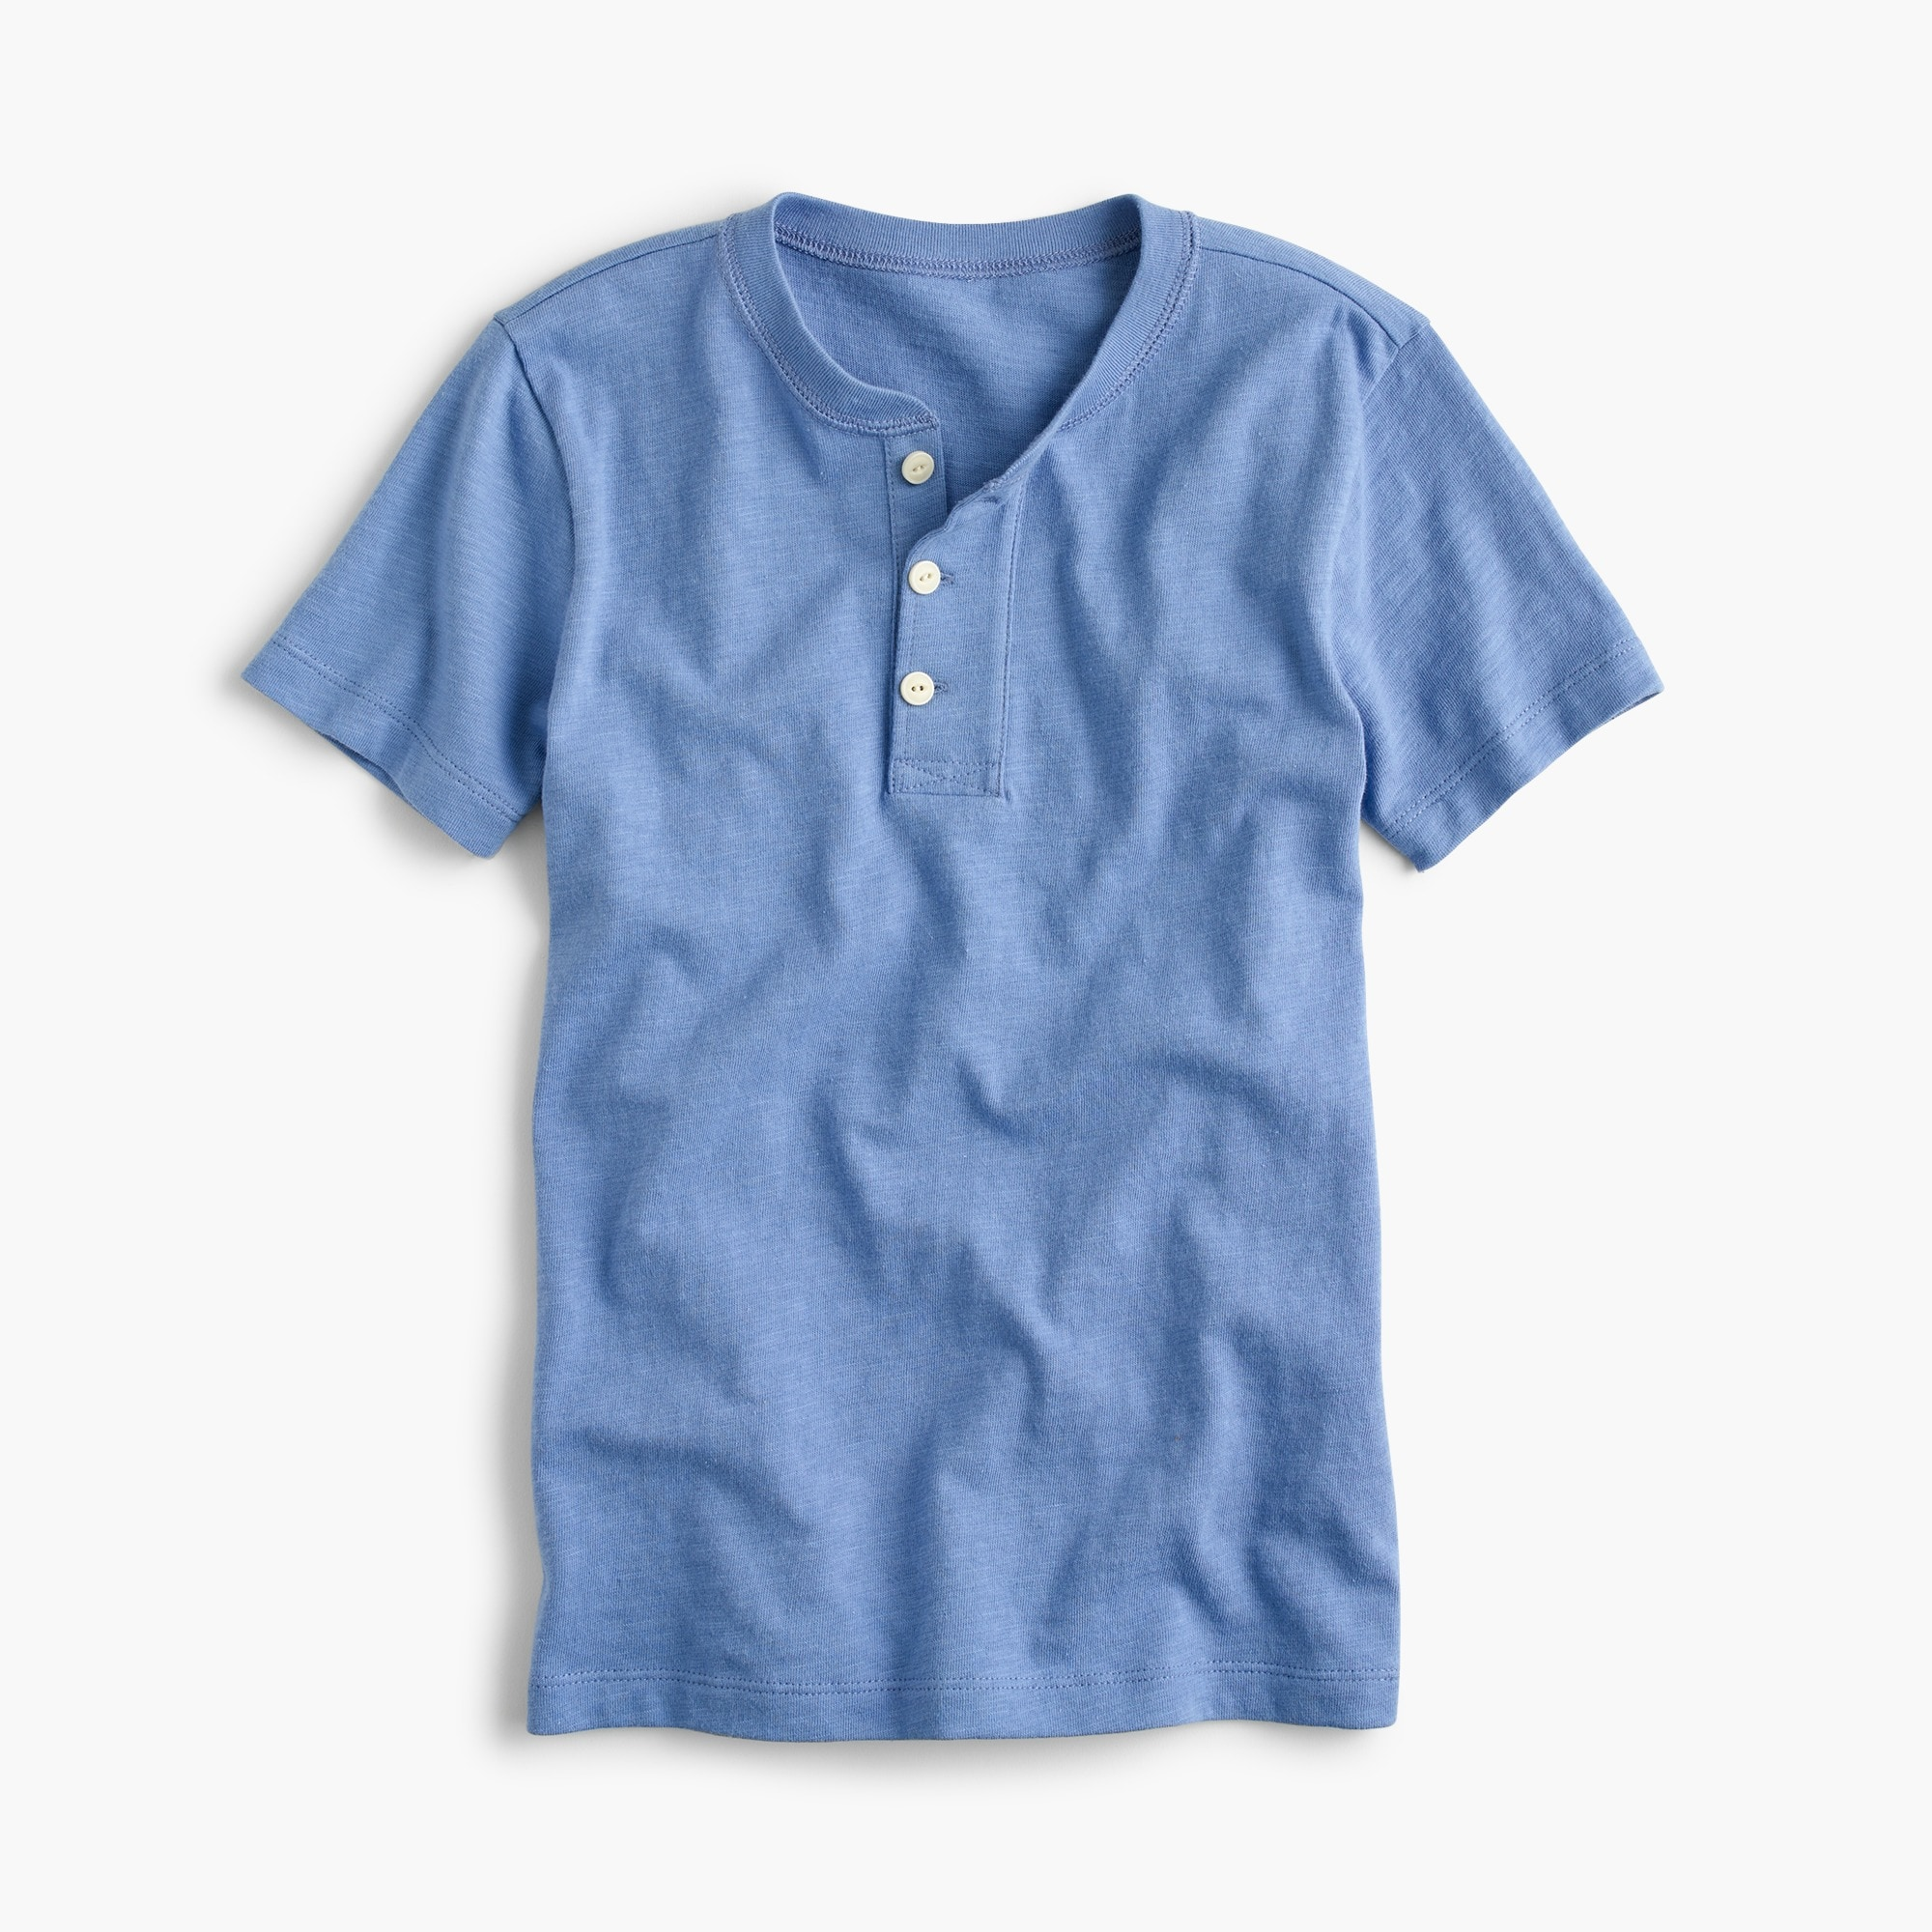 Image 2 for Boys' short-sleeve henley shirt